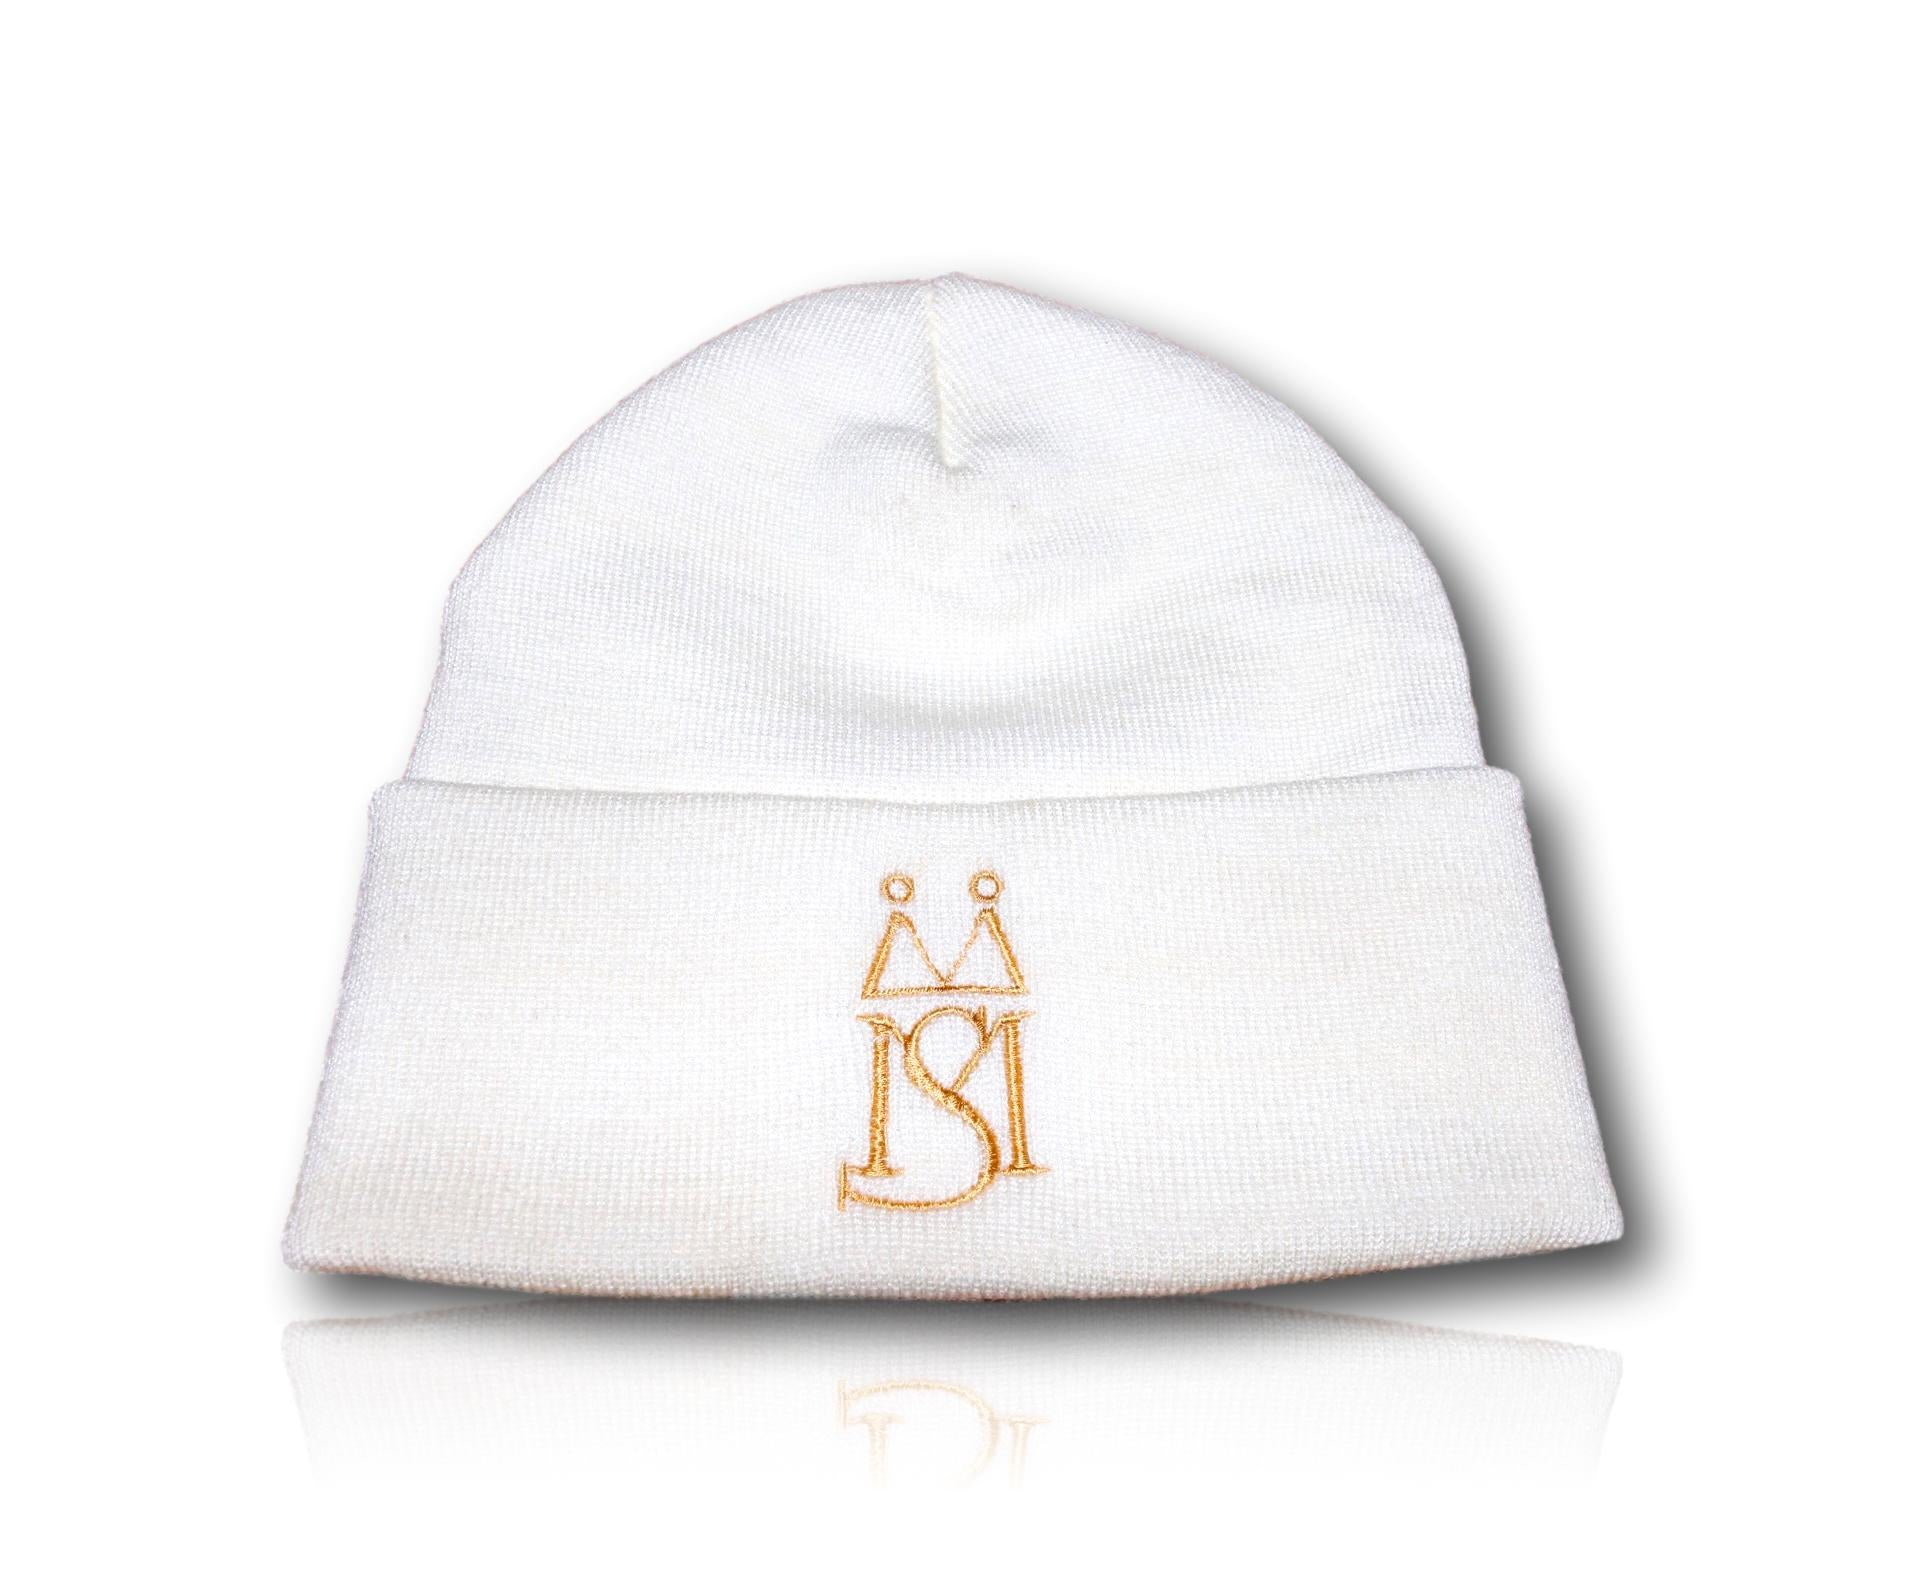 MS ™ White Crystal Hat (Unisex)